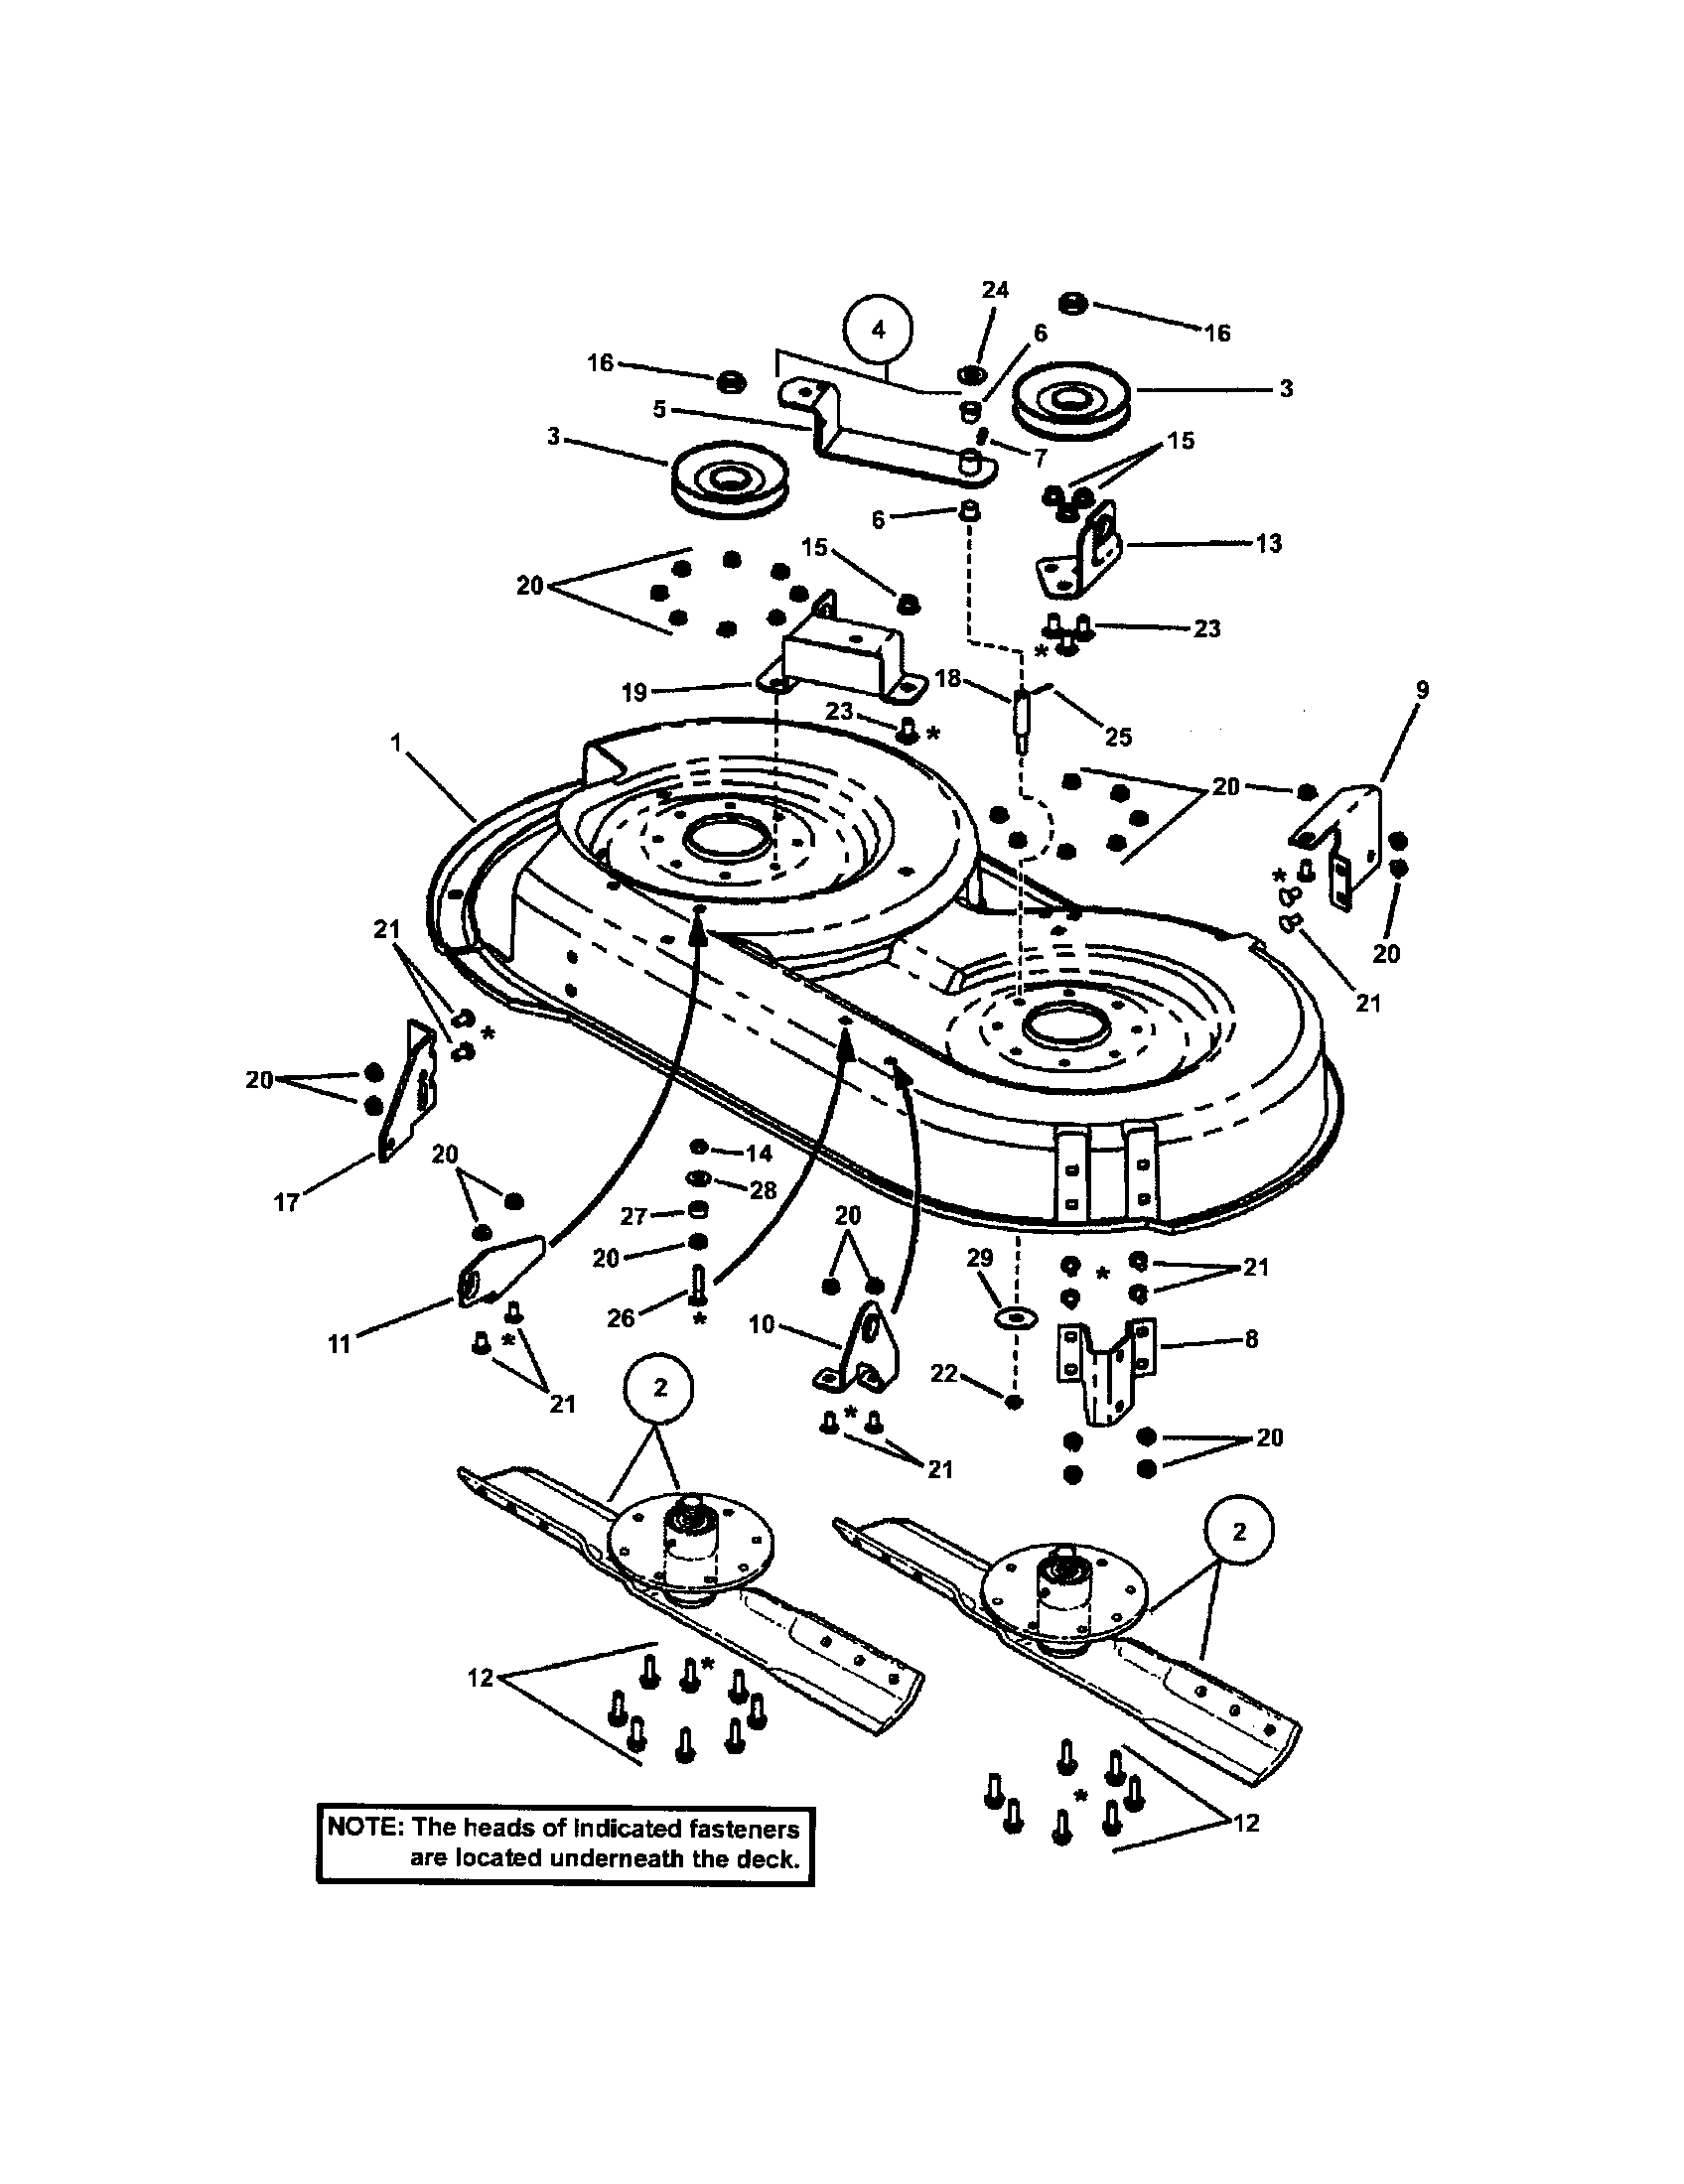 Sears Rear Engine Riding Mower Parts Diagram 2012 Snapper